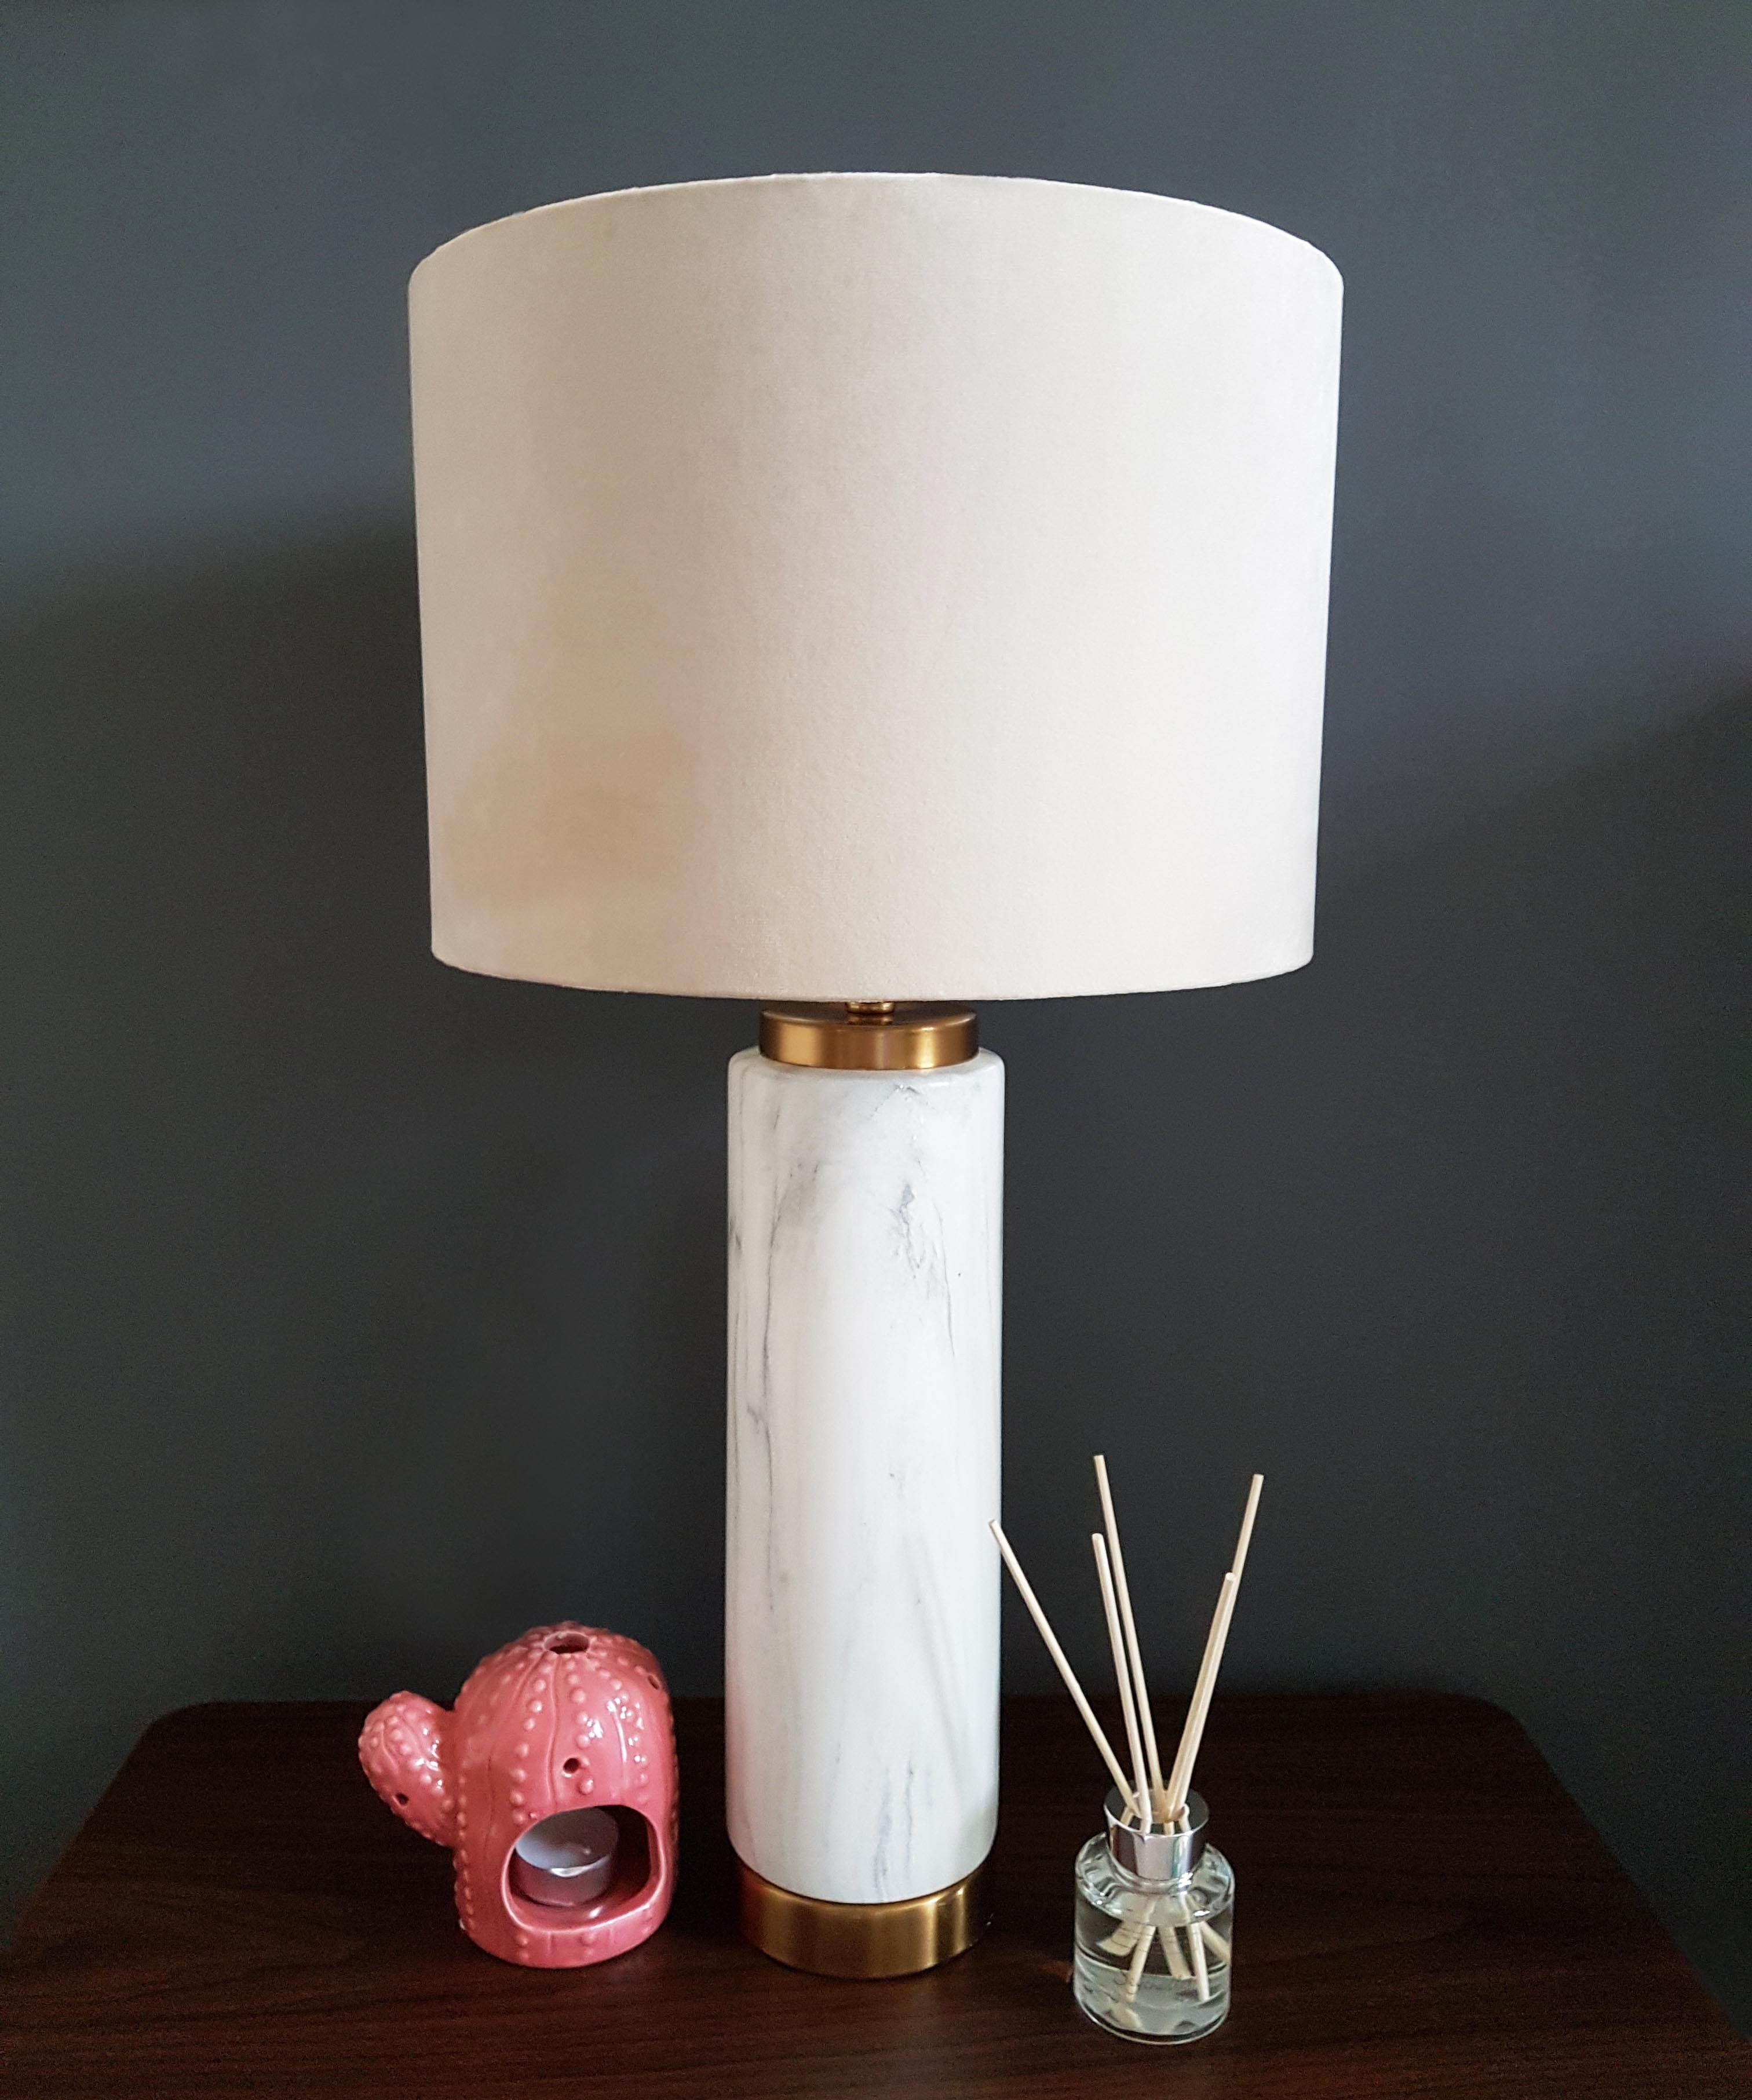 White Marble Table Lamp with Gold Accents and Cream velvet Lampshade